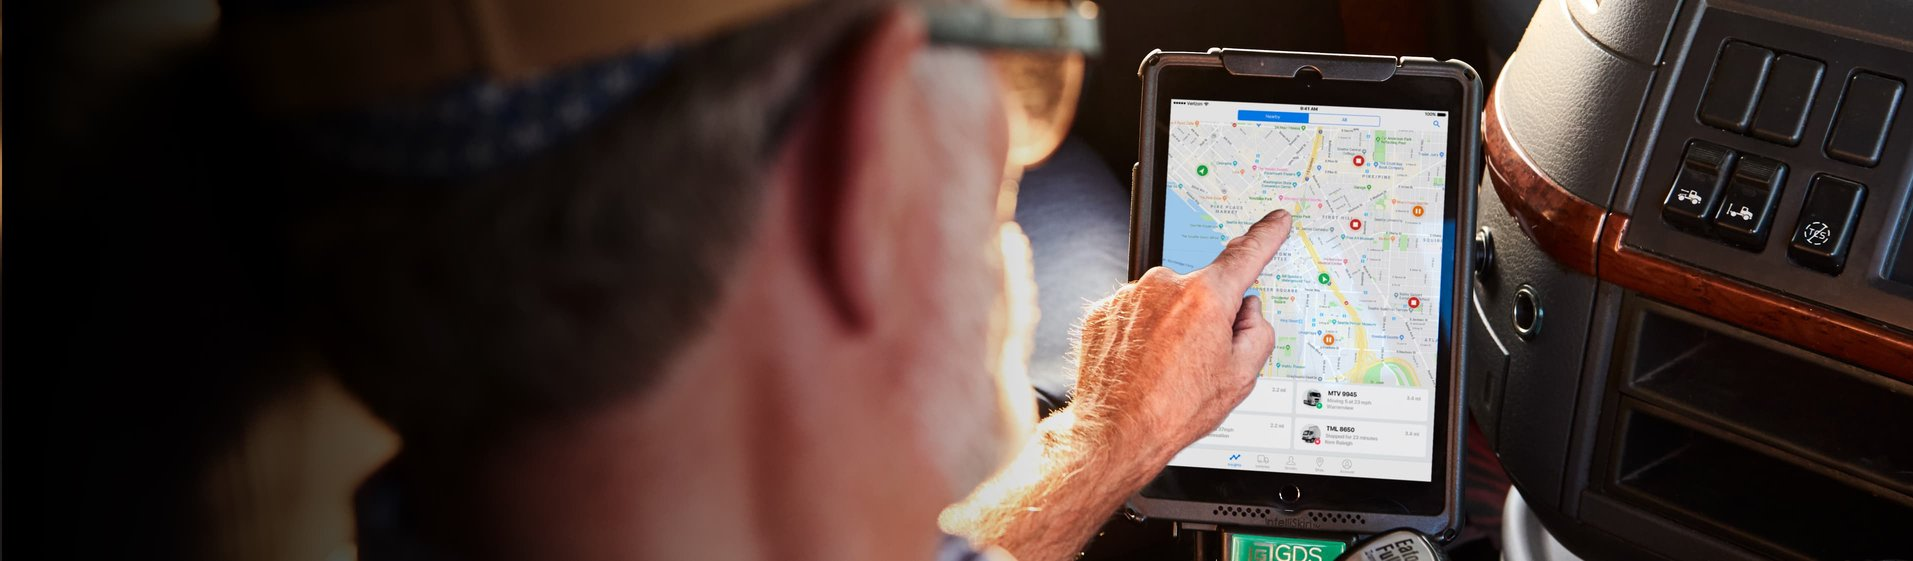 Vehicle tracking systems can offer companies big benefits